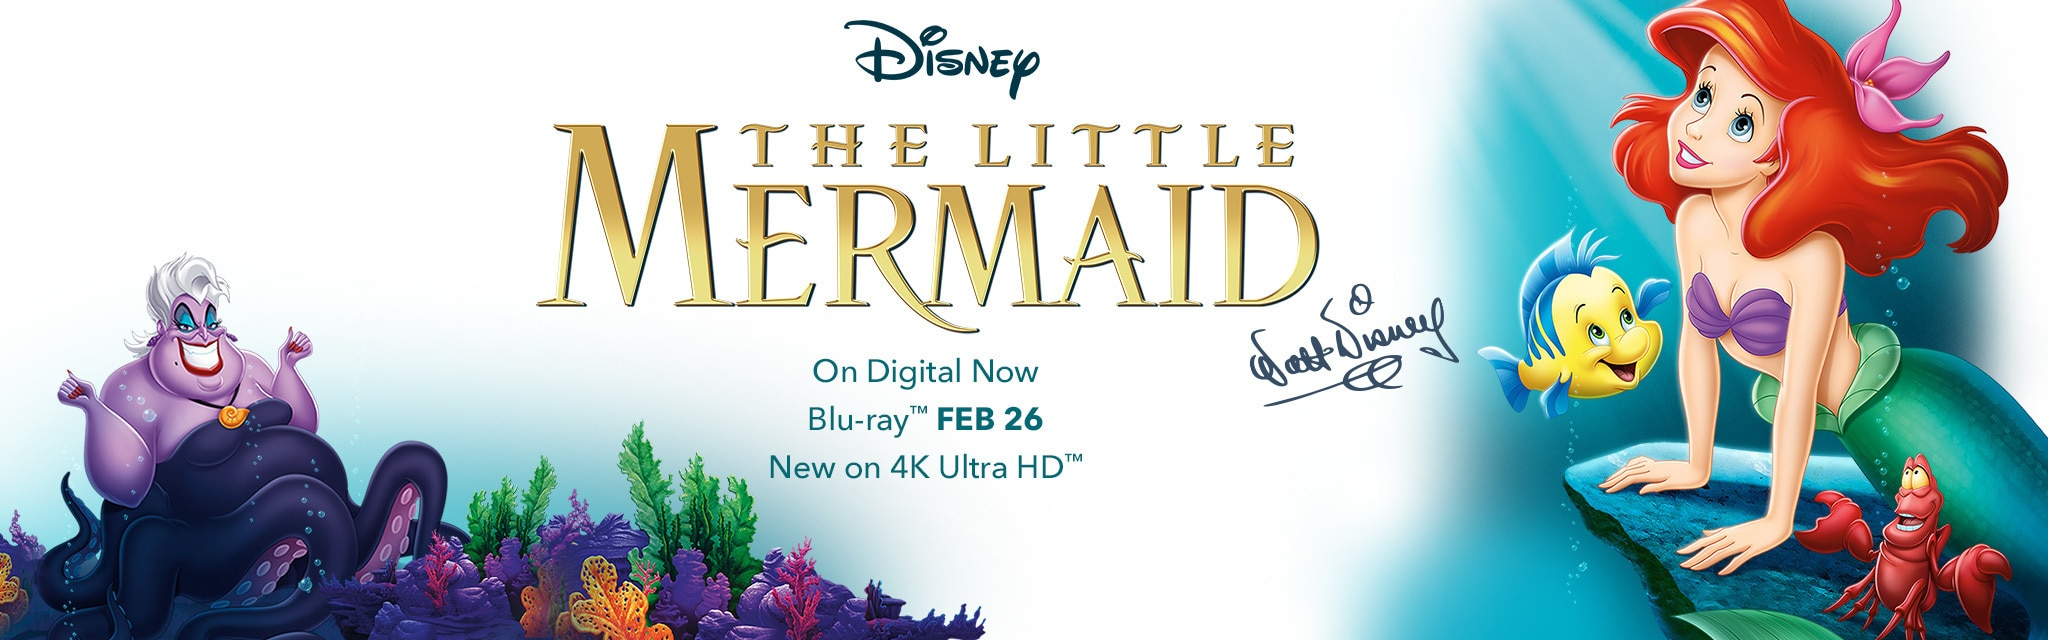 The Little Mermaid - On Digital Now - Blu-ray February 26 - New on 4K Ultra HD